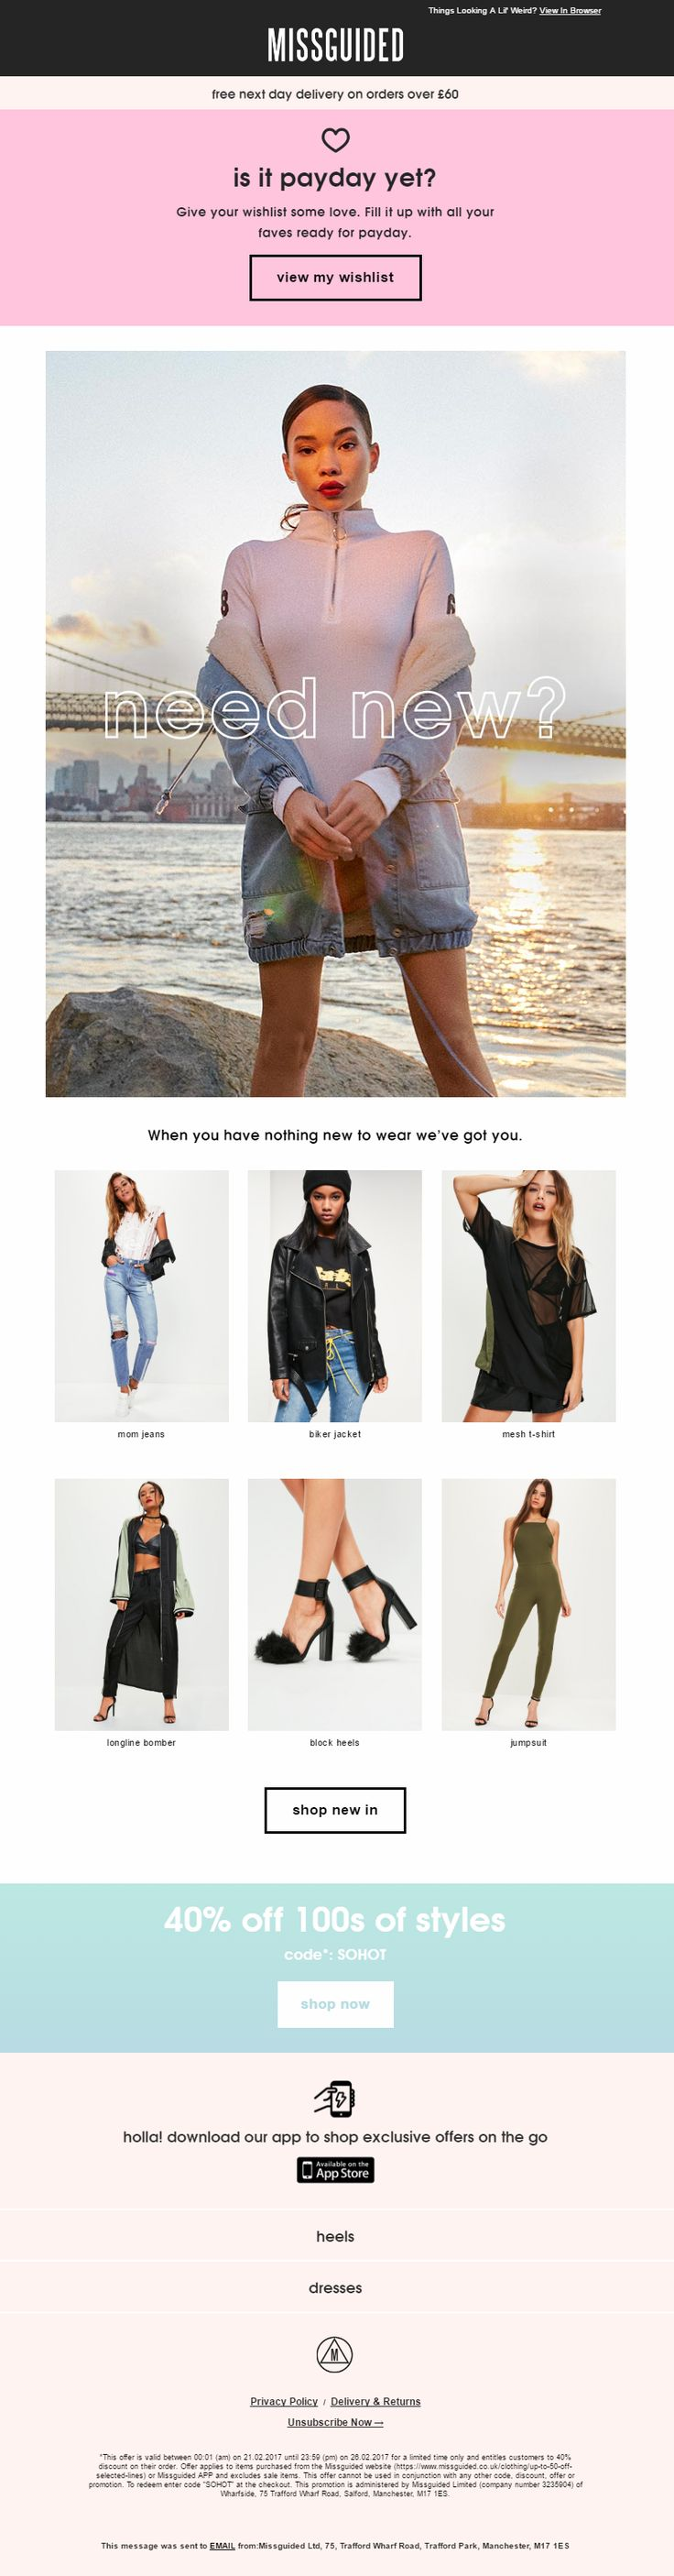 Wishlist Email from Missguided with Product Recommendations and Coupon code #EmailMarketing #Email #Marketing #Wishlist #Coupon #Product #Recommendations #Fashion